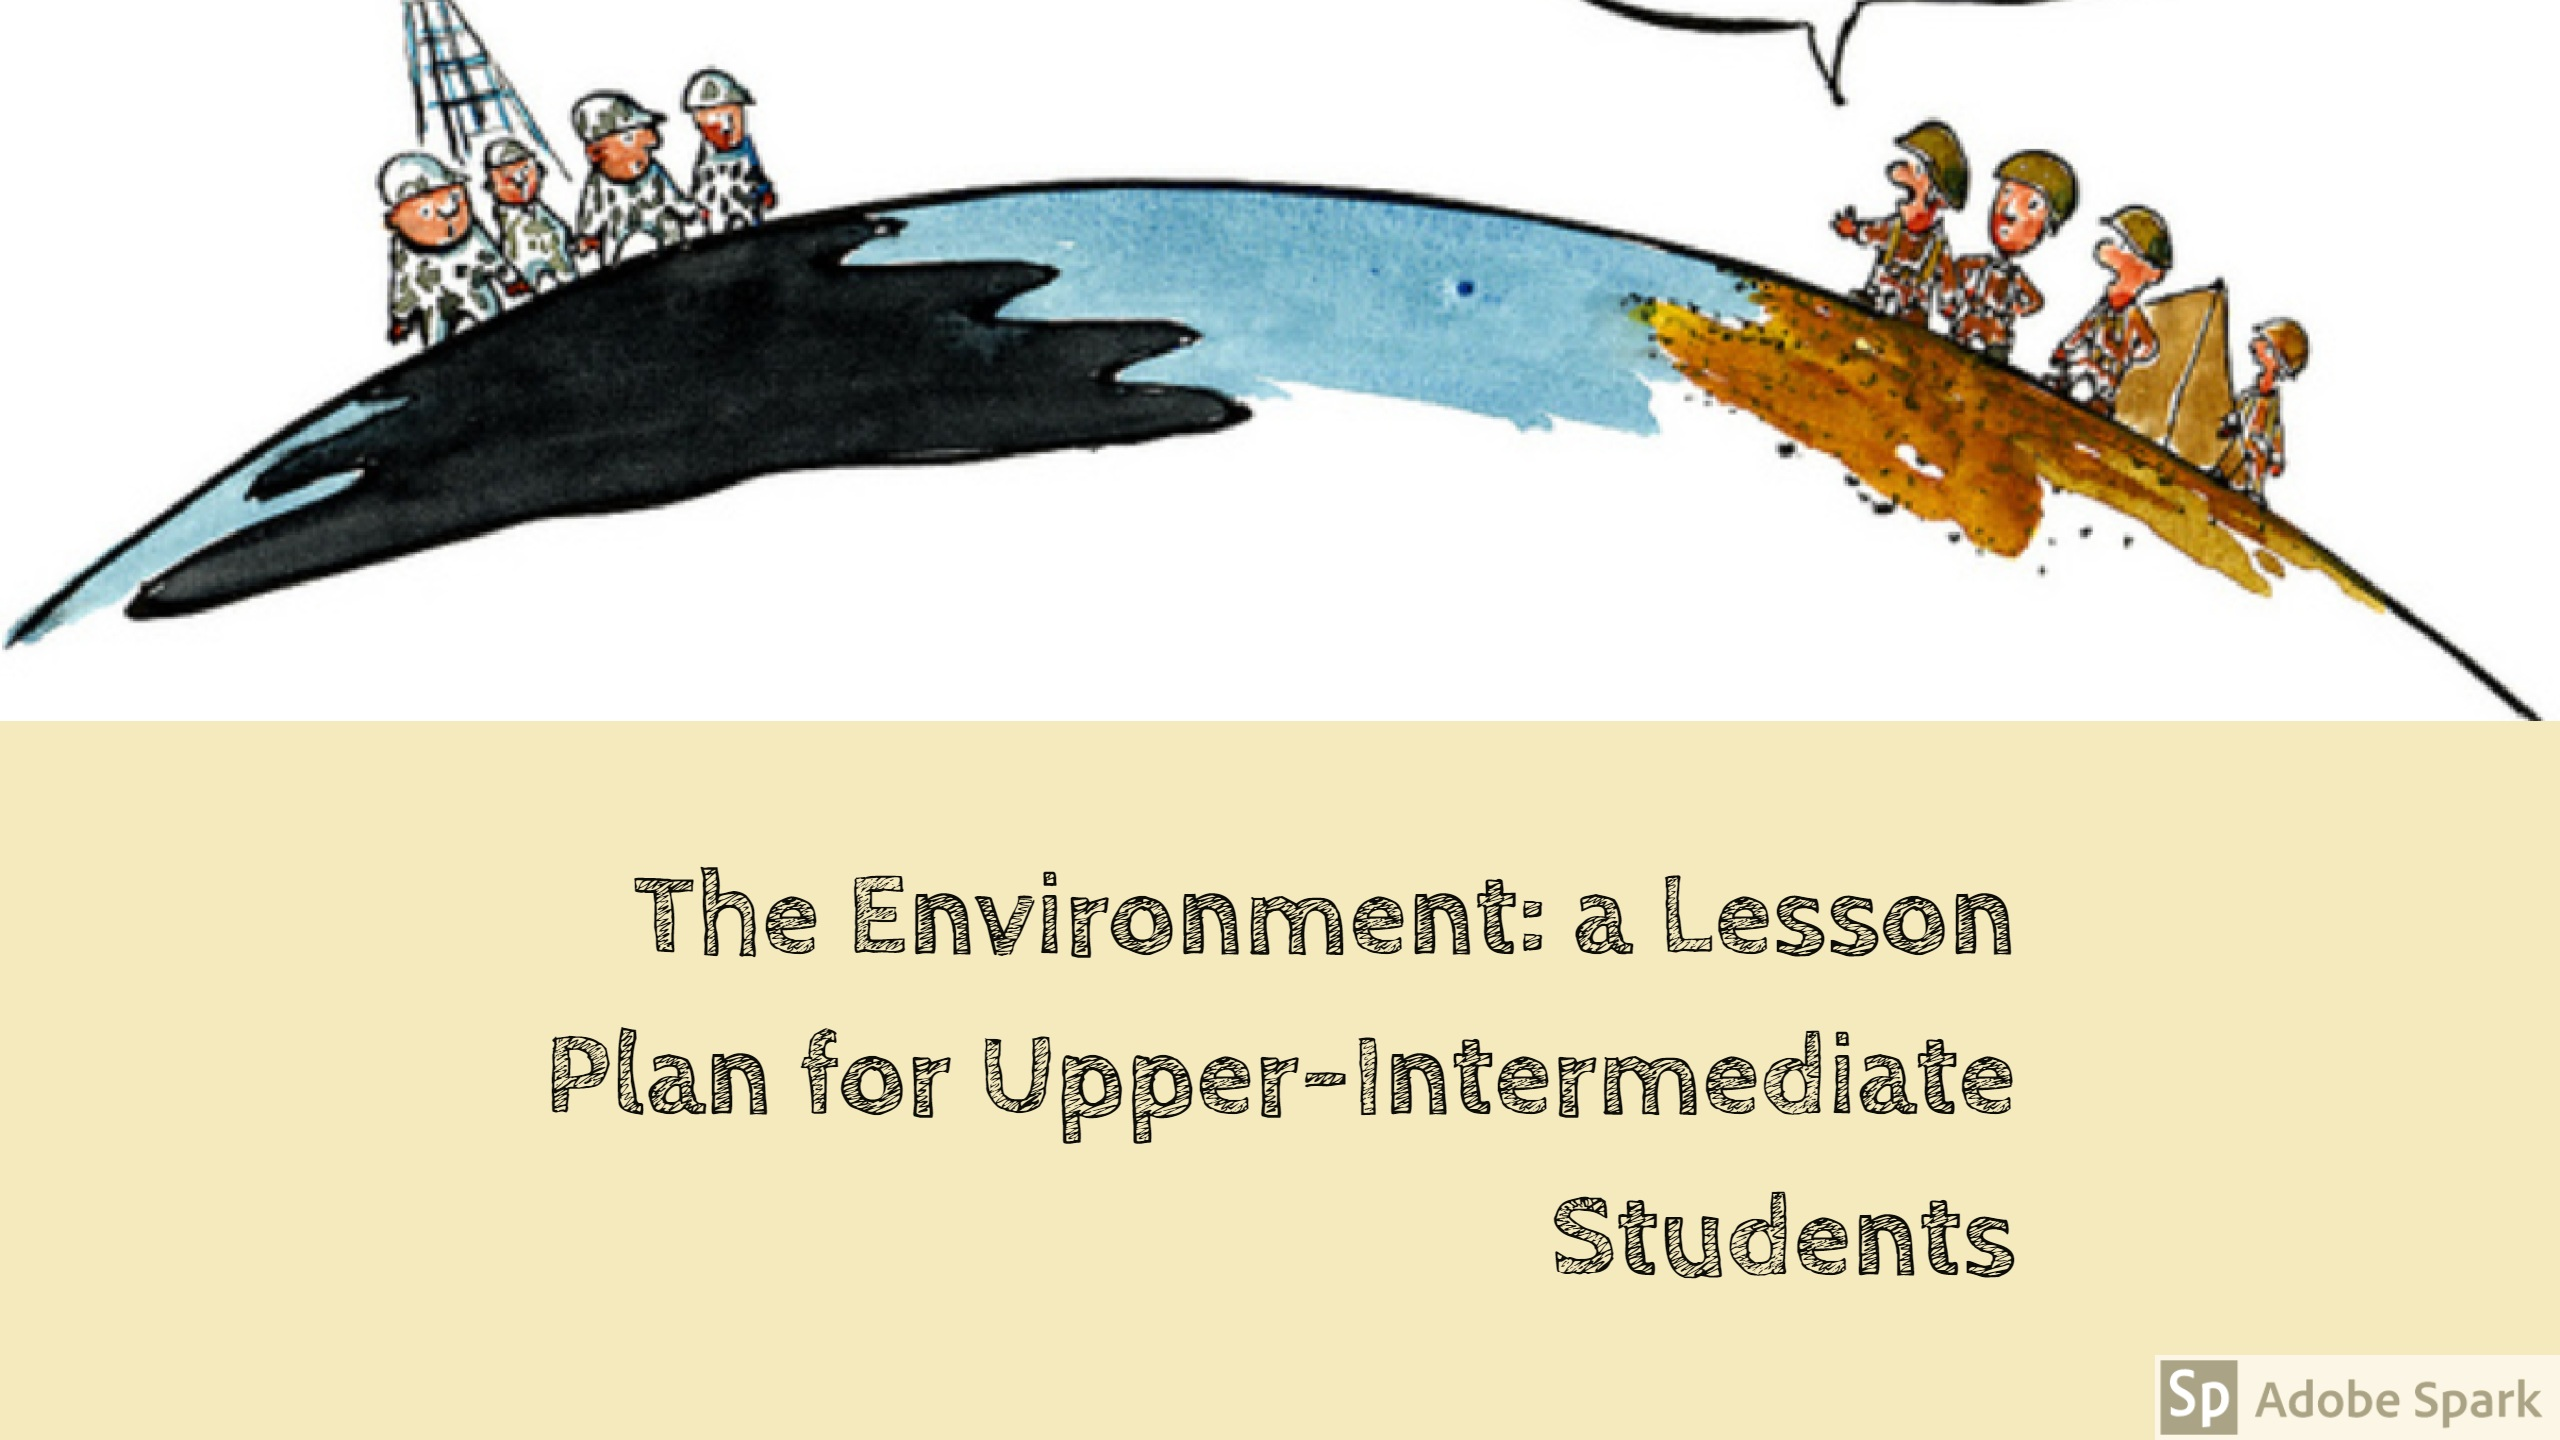 The Environment: a Lesson Plan for Upper-Intermediate